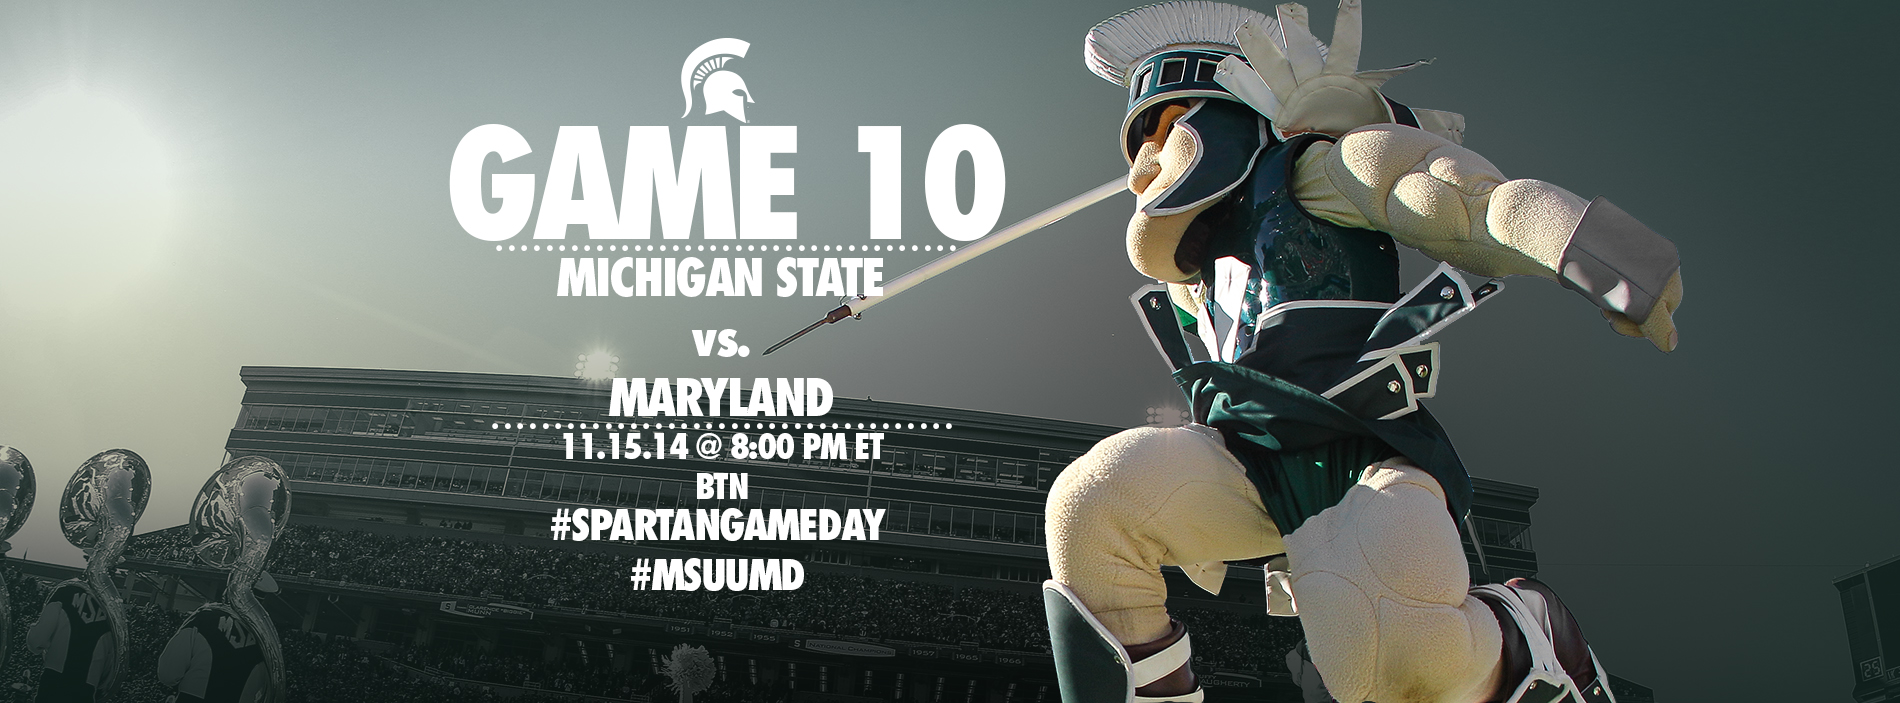 FB Cover_Game 10 Maryland.jpg